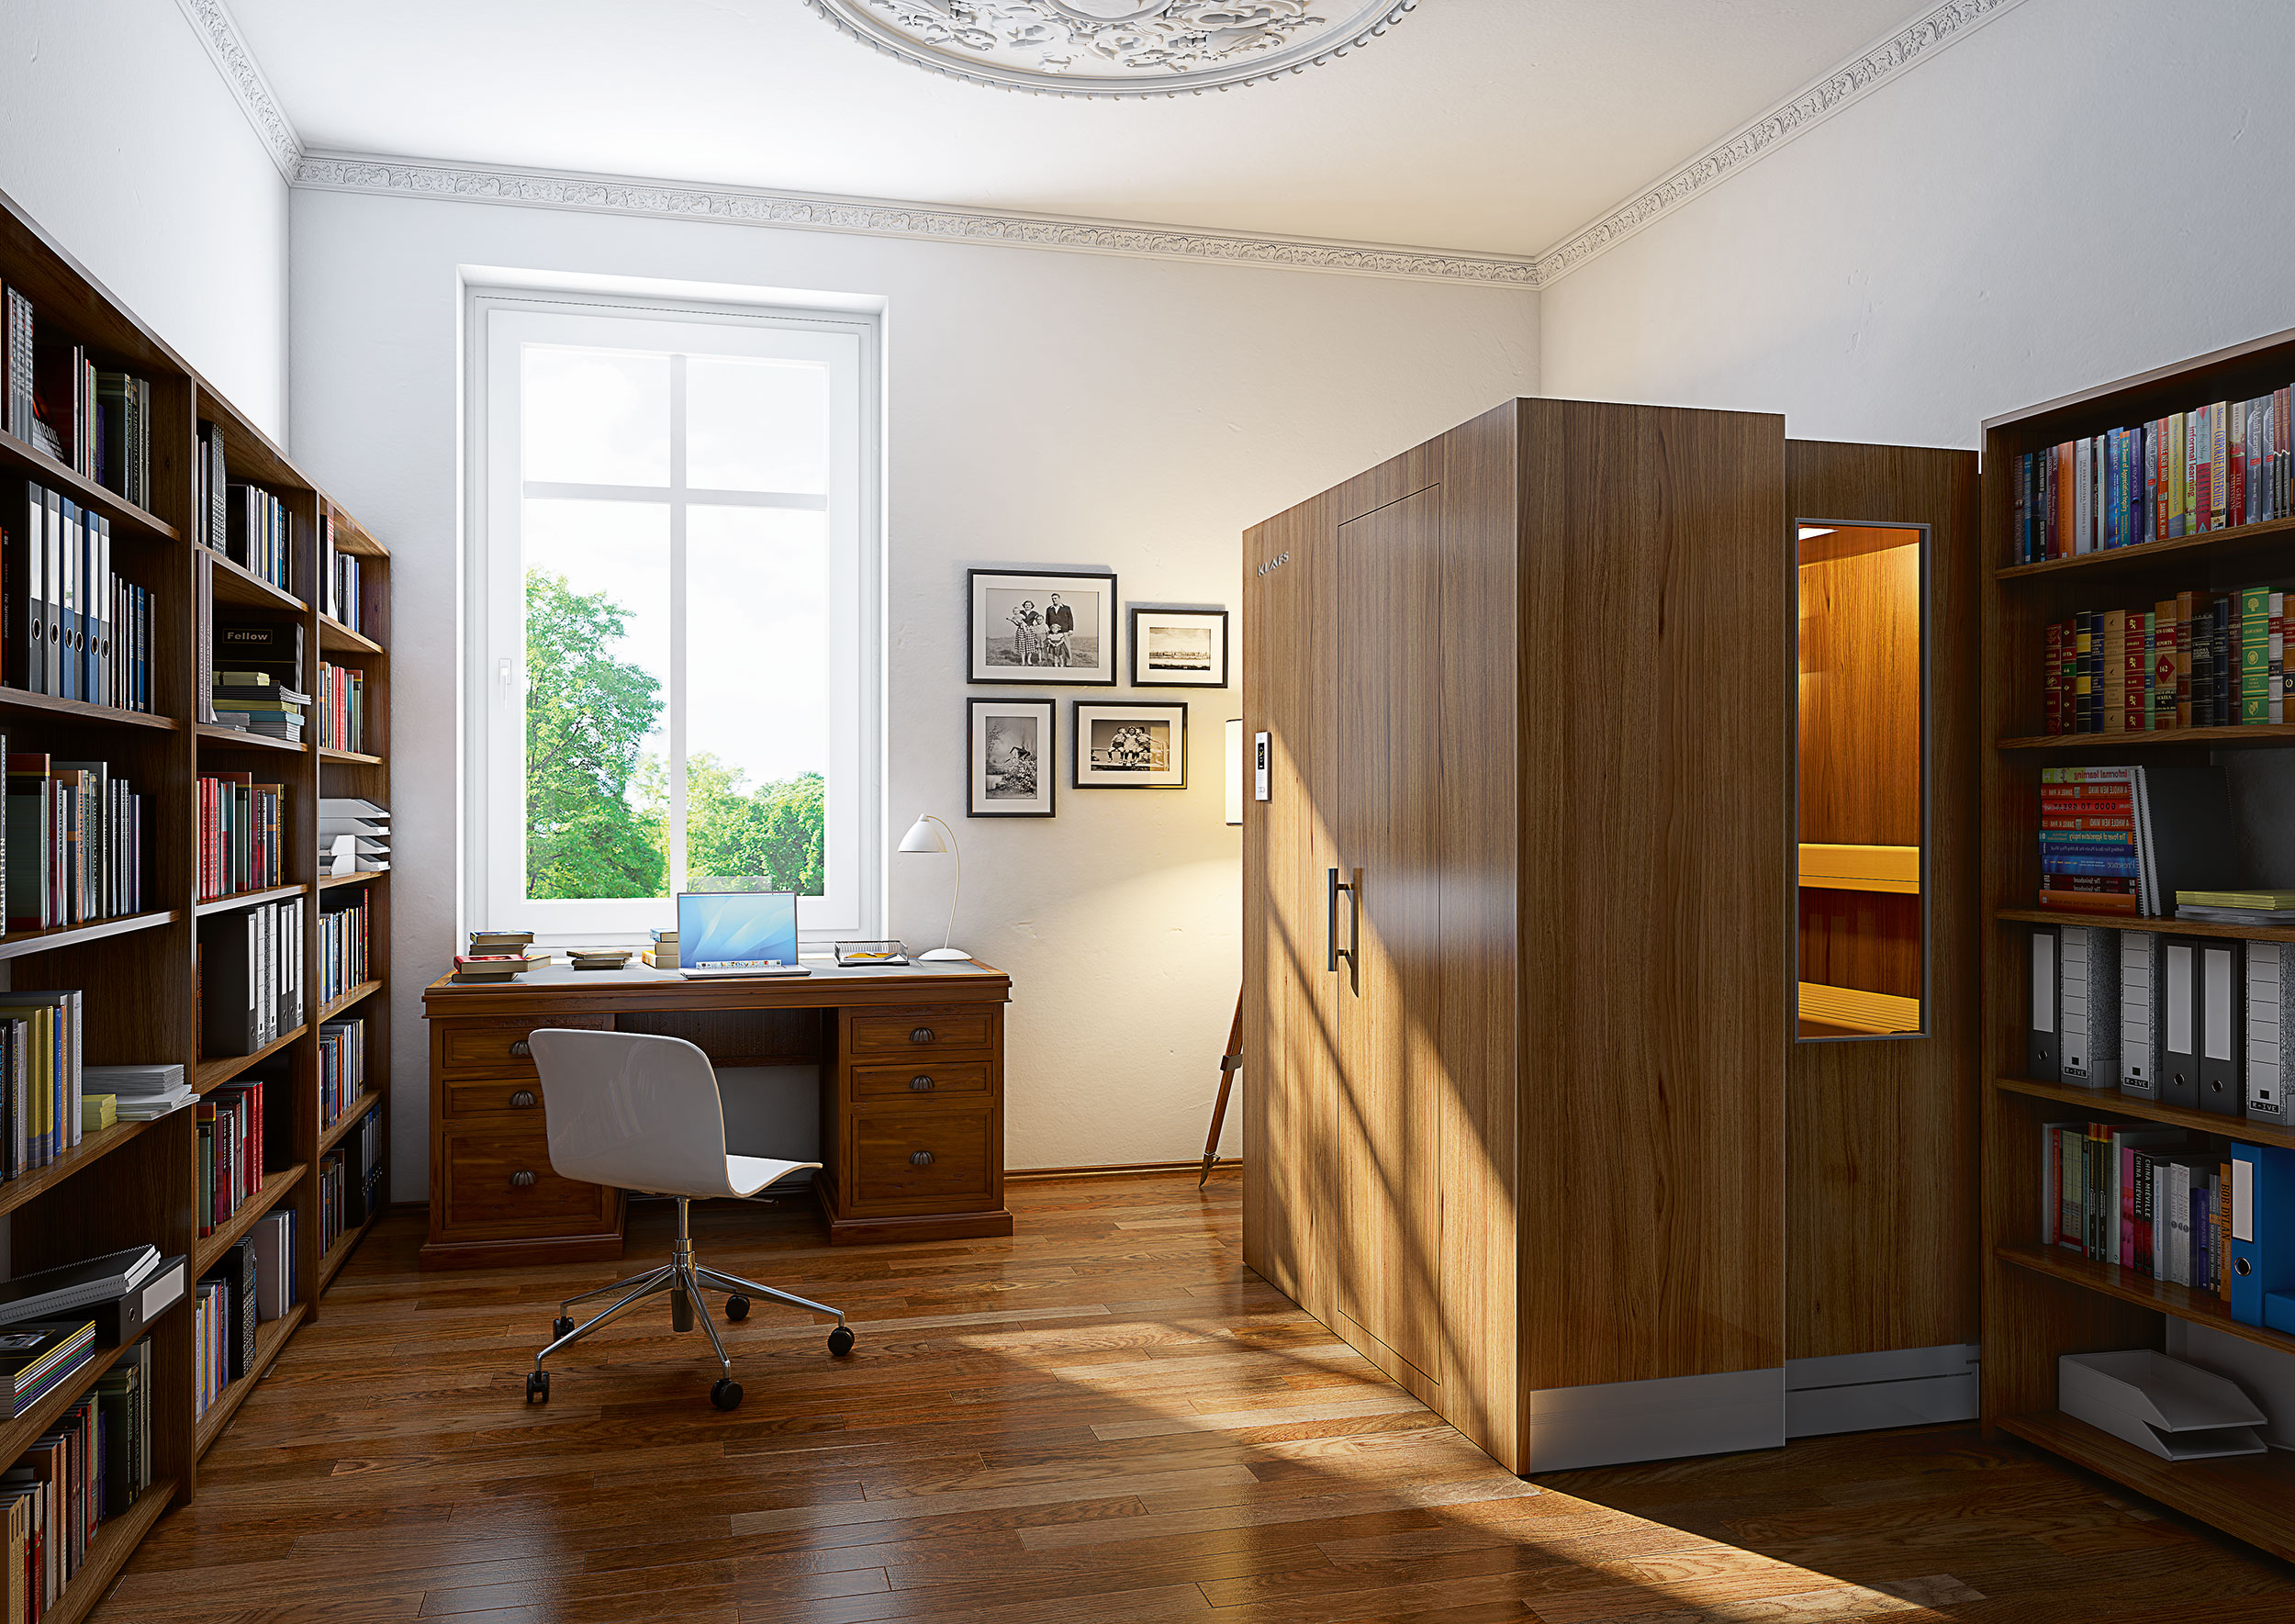 sauna s1 discover the sauna of the future discover the sauna s1 from klafs. Black Bedroom Furniture Sets. Home Design Ideas